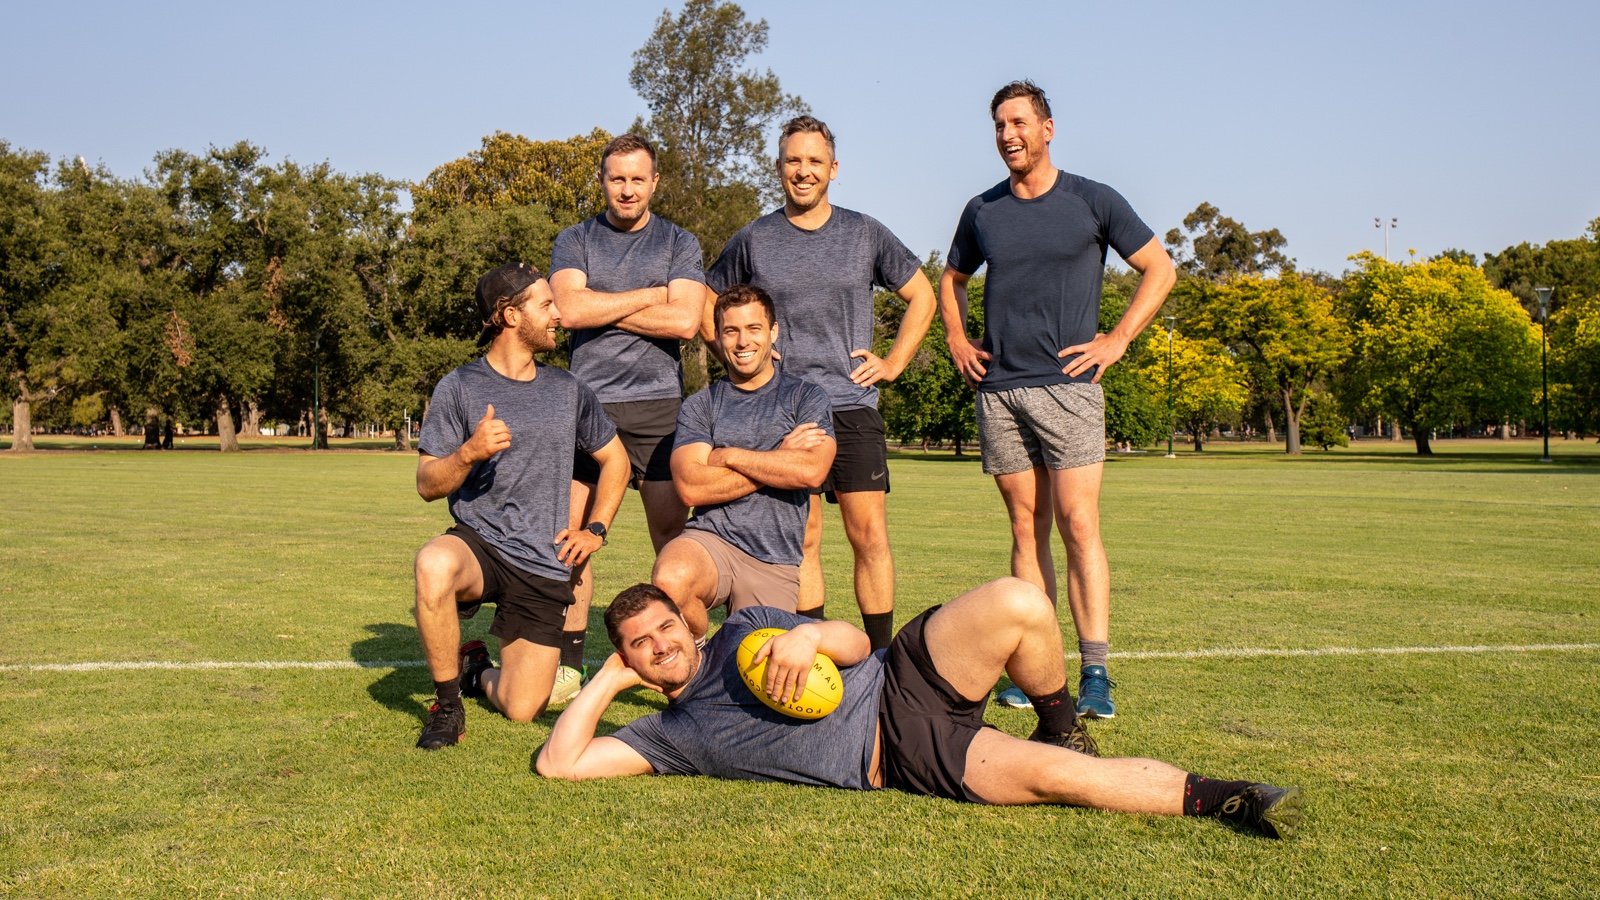 All-male Footy 7s team pose for a photo